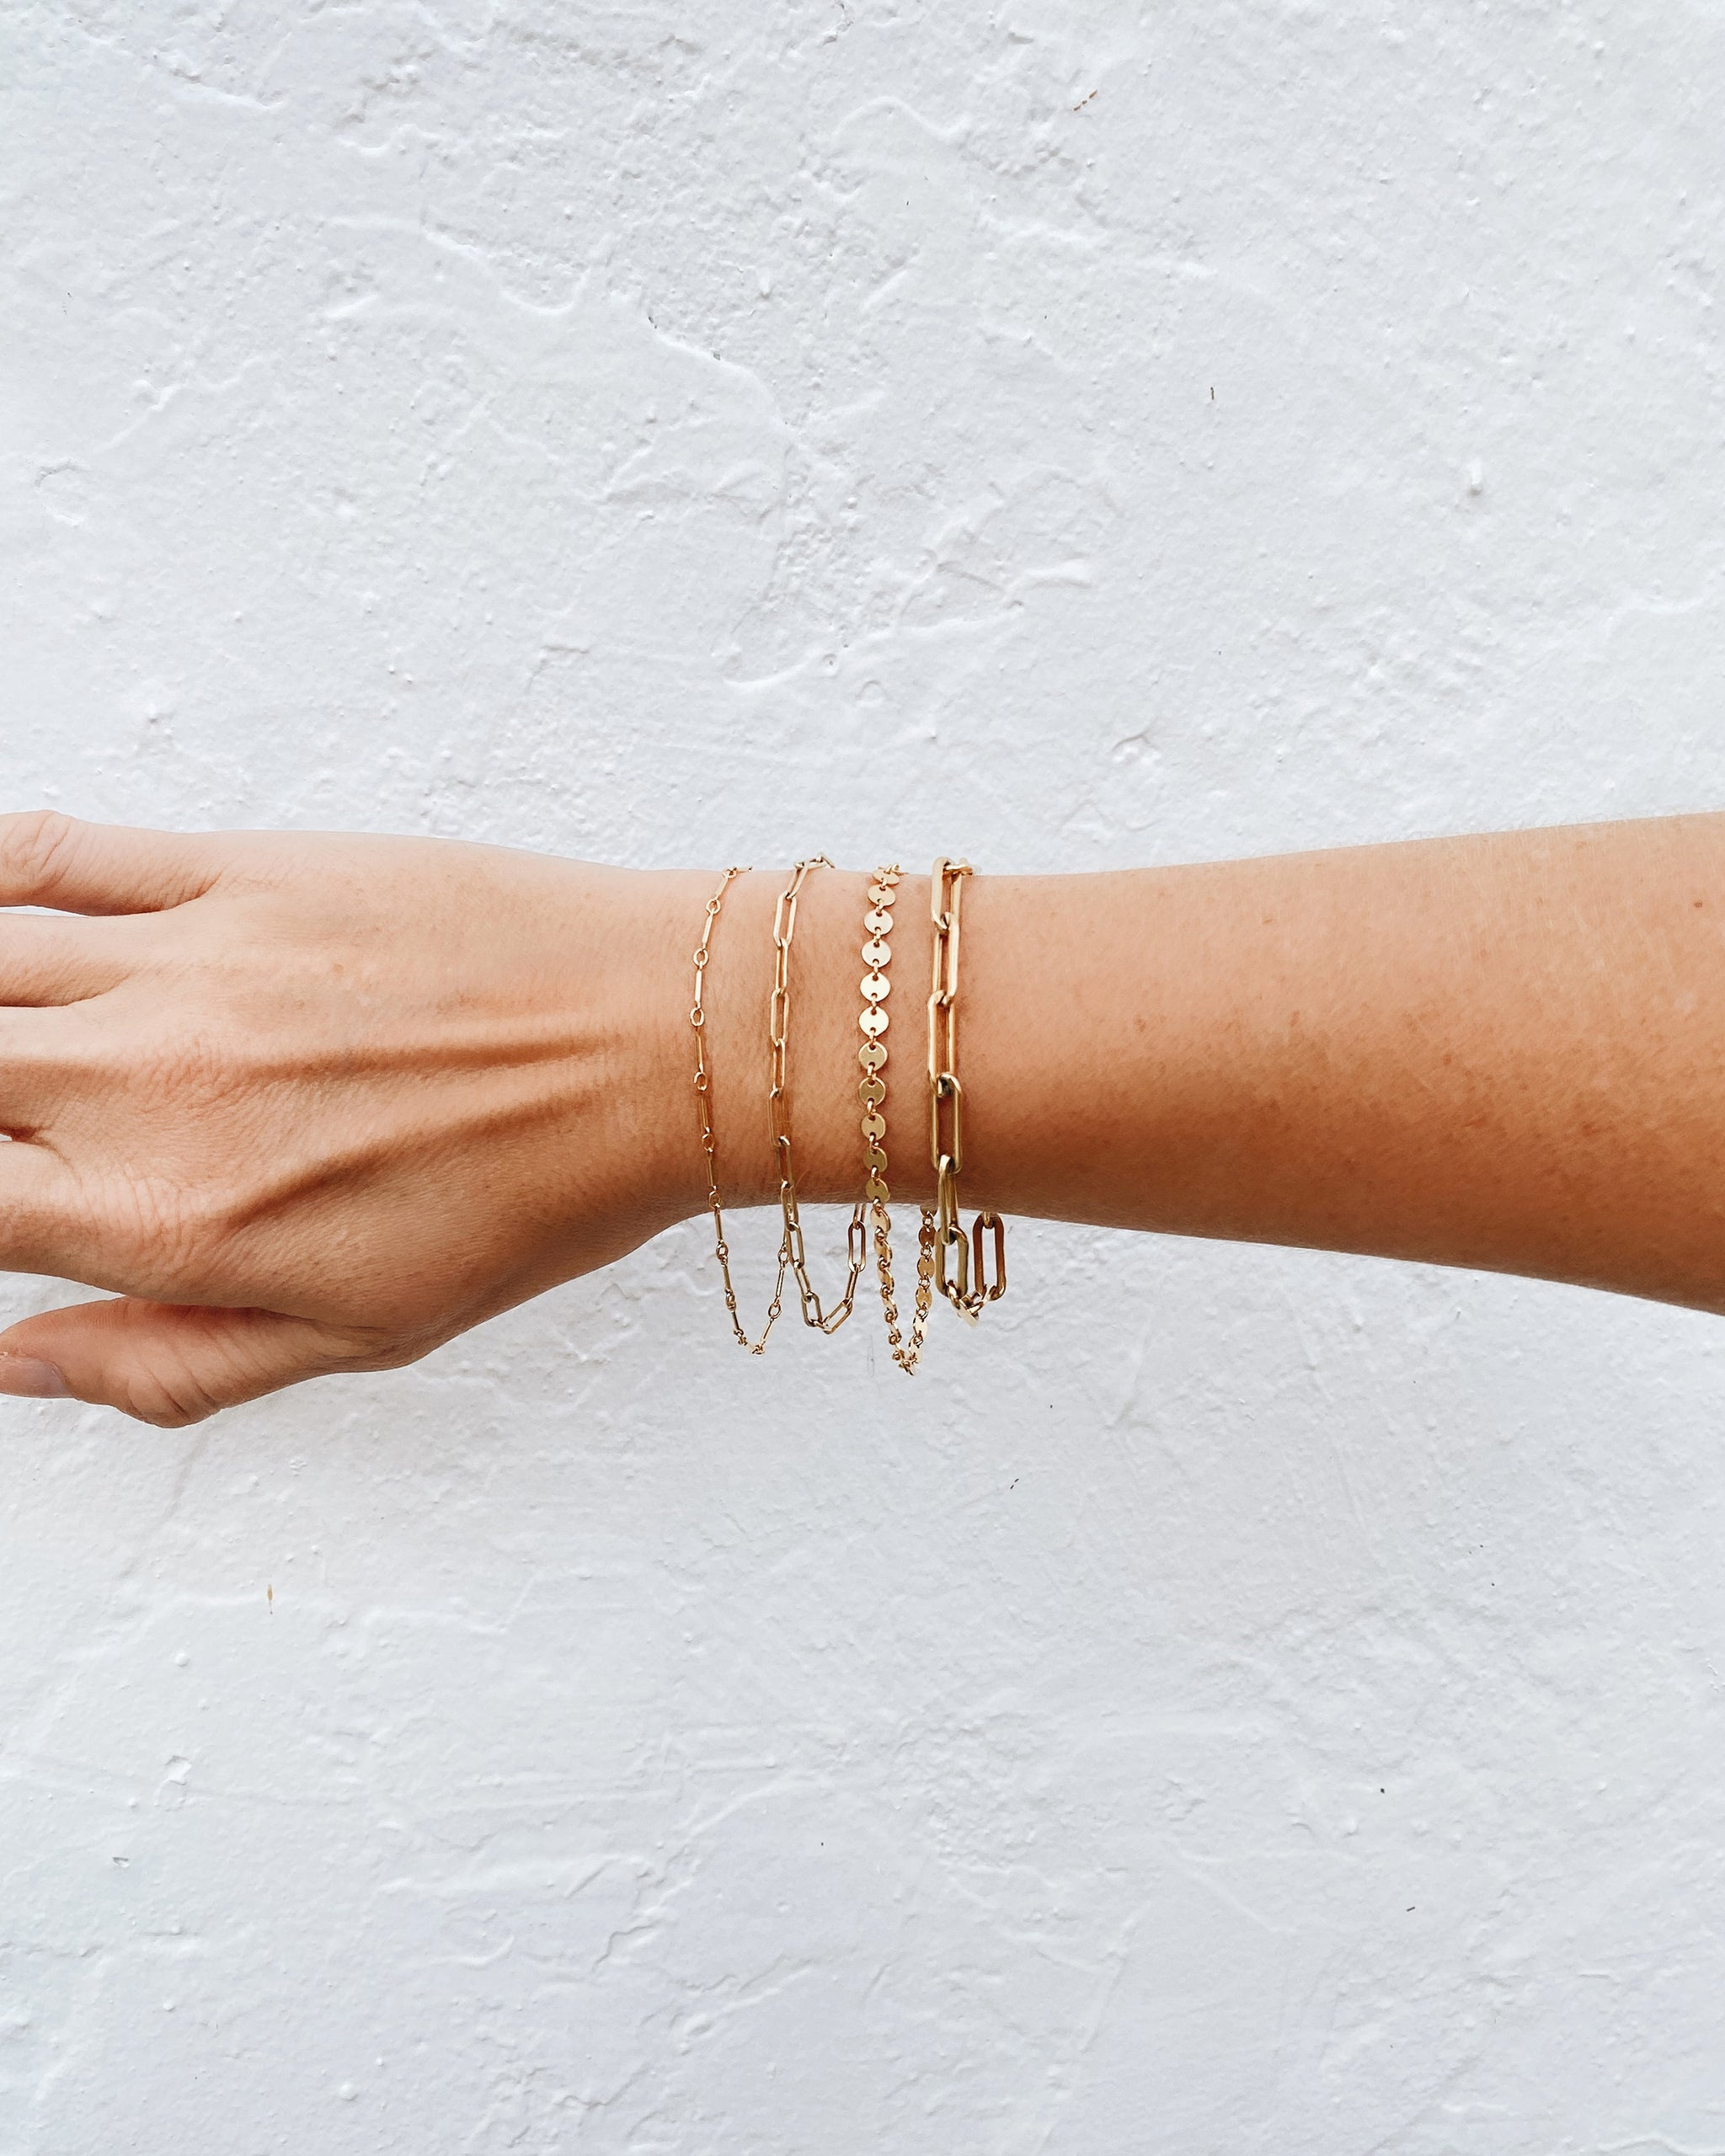 14k Gold Filled Ursa Bracelet, Handmade by Turquoise and Tobacco in Los Angeles, California USA